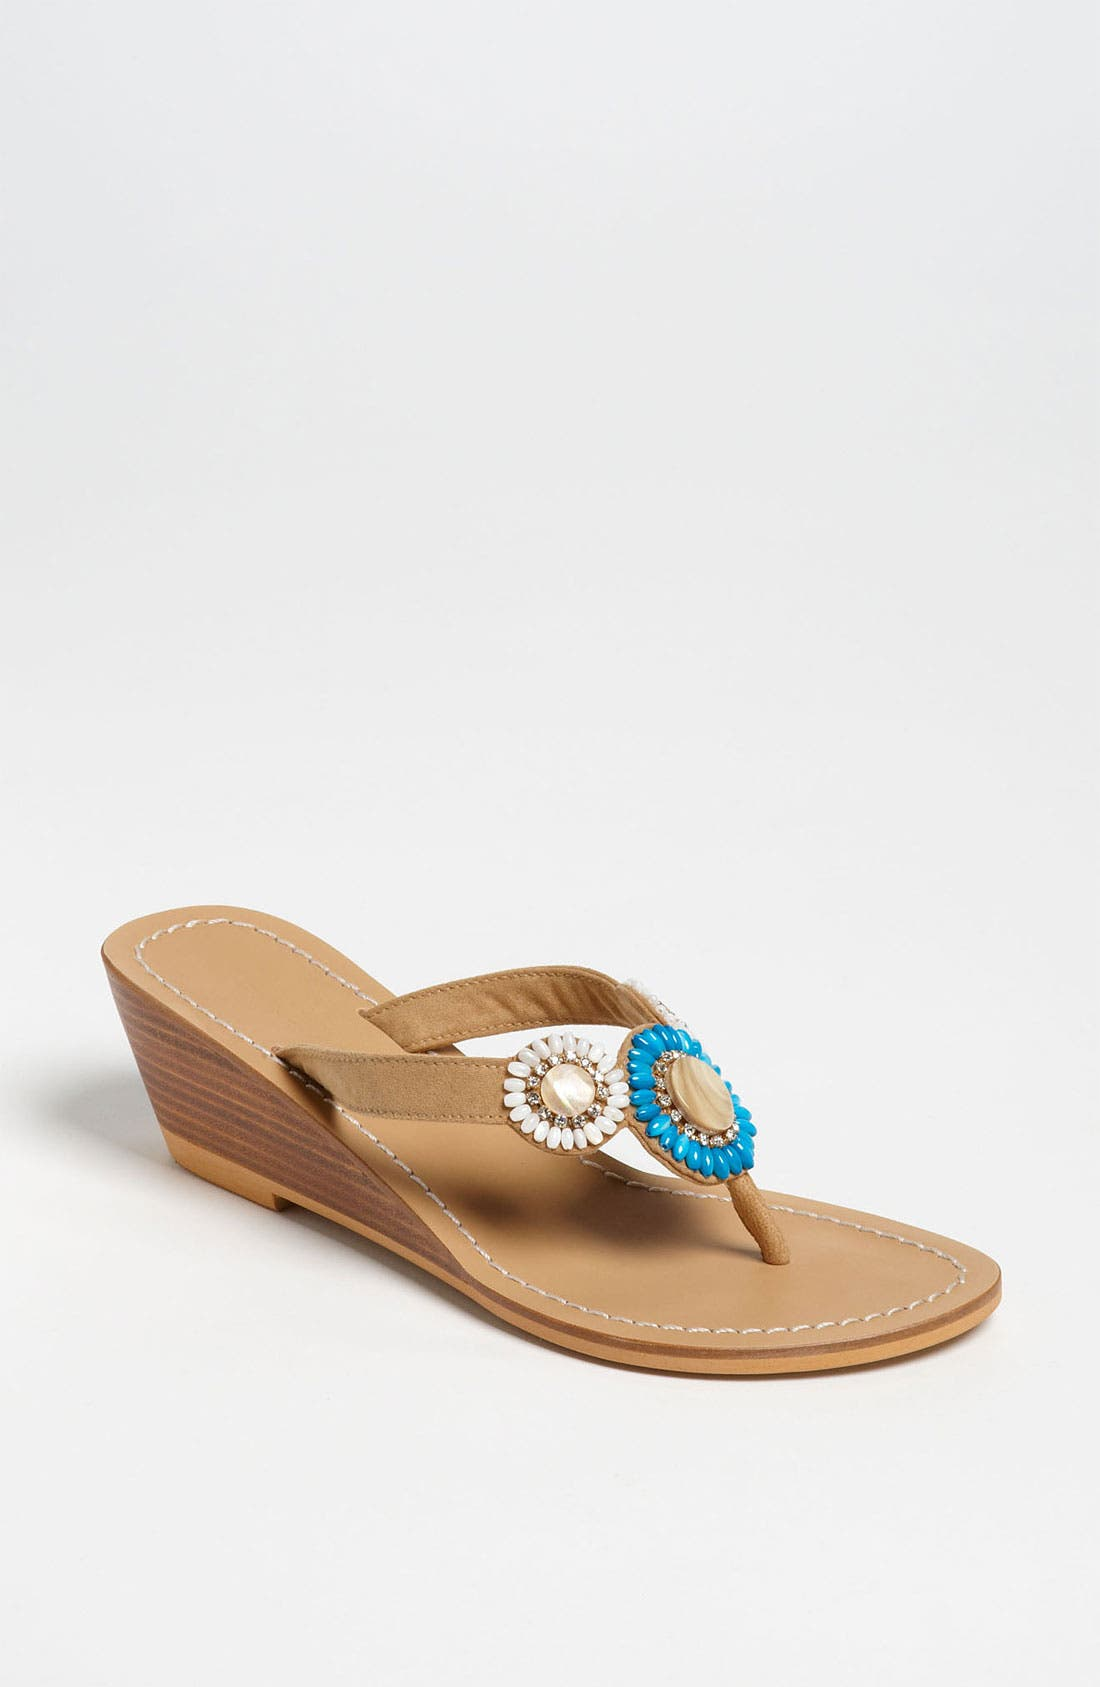 Main Image - Skemo Beaded Thong Sandal